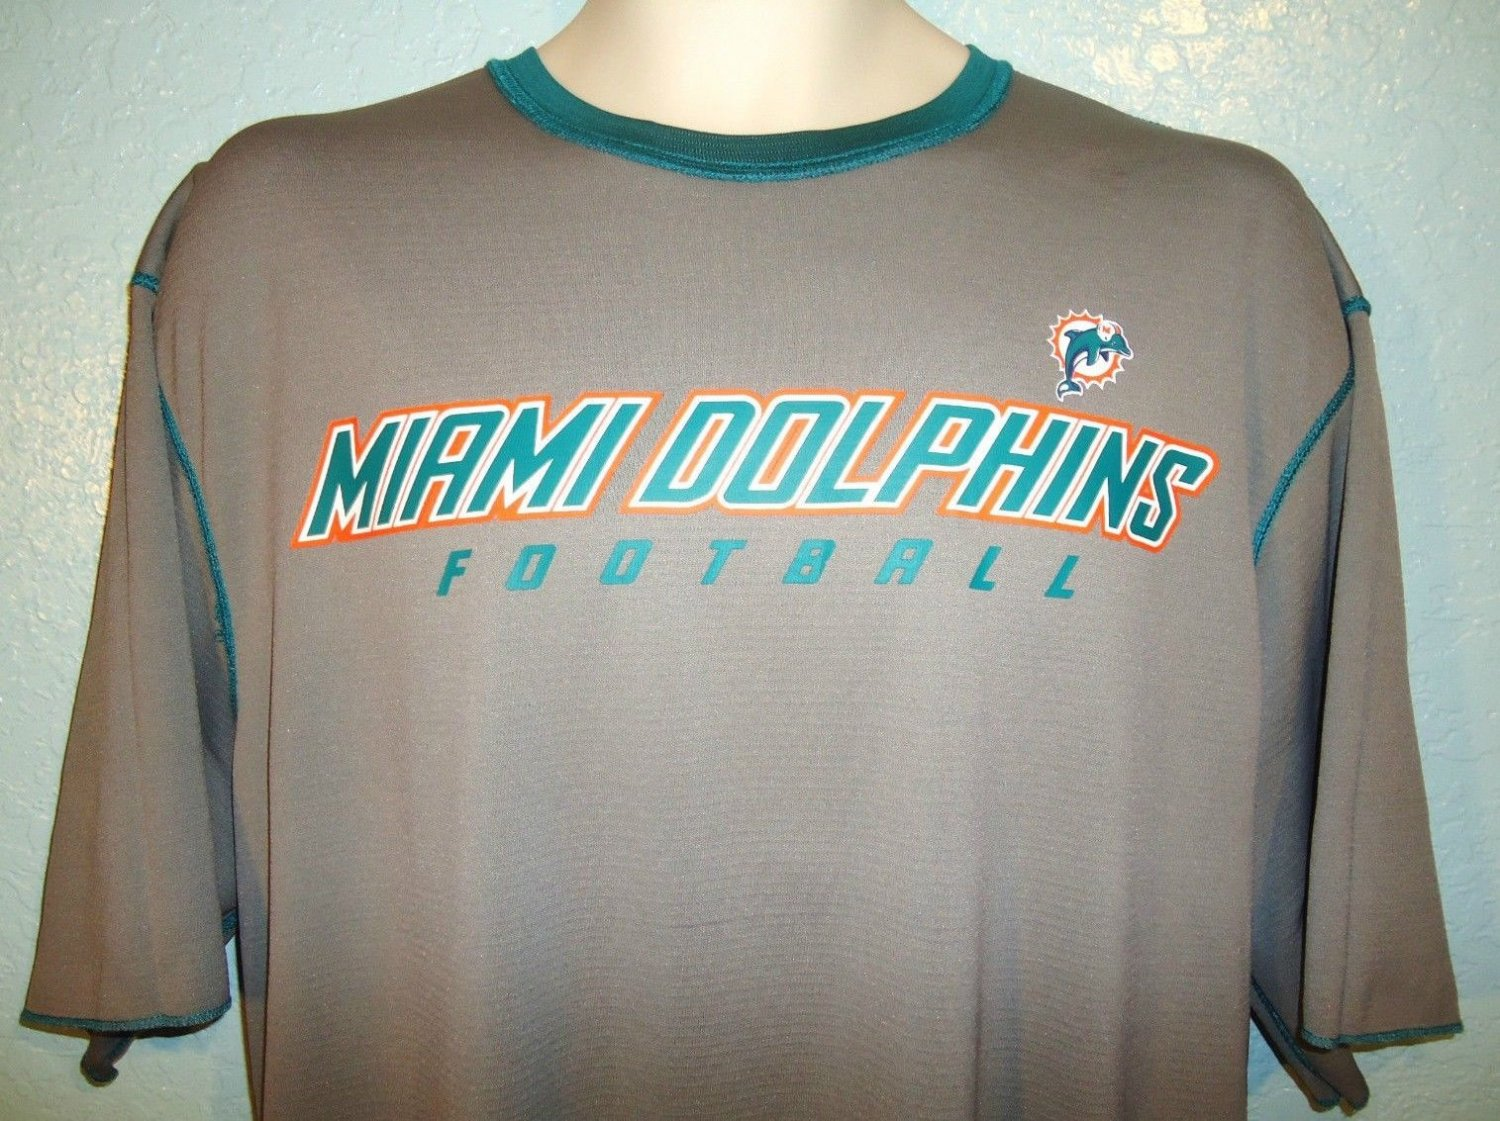 NFL - MIAMI DOLPHINS - TEAM - APPAREL - REVERSIBLE - FOOTBALL - JERSEY - L - NEW